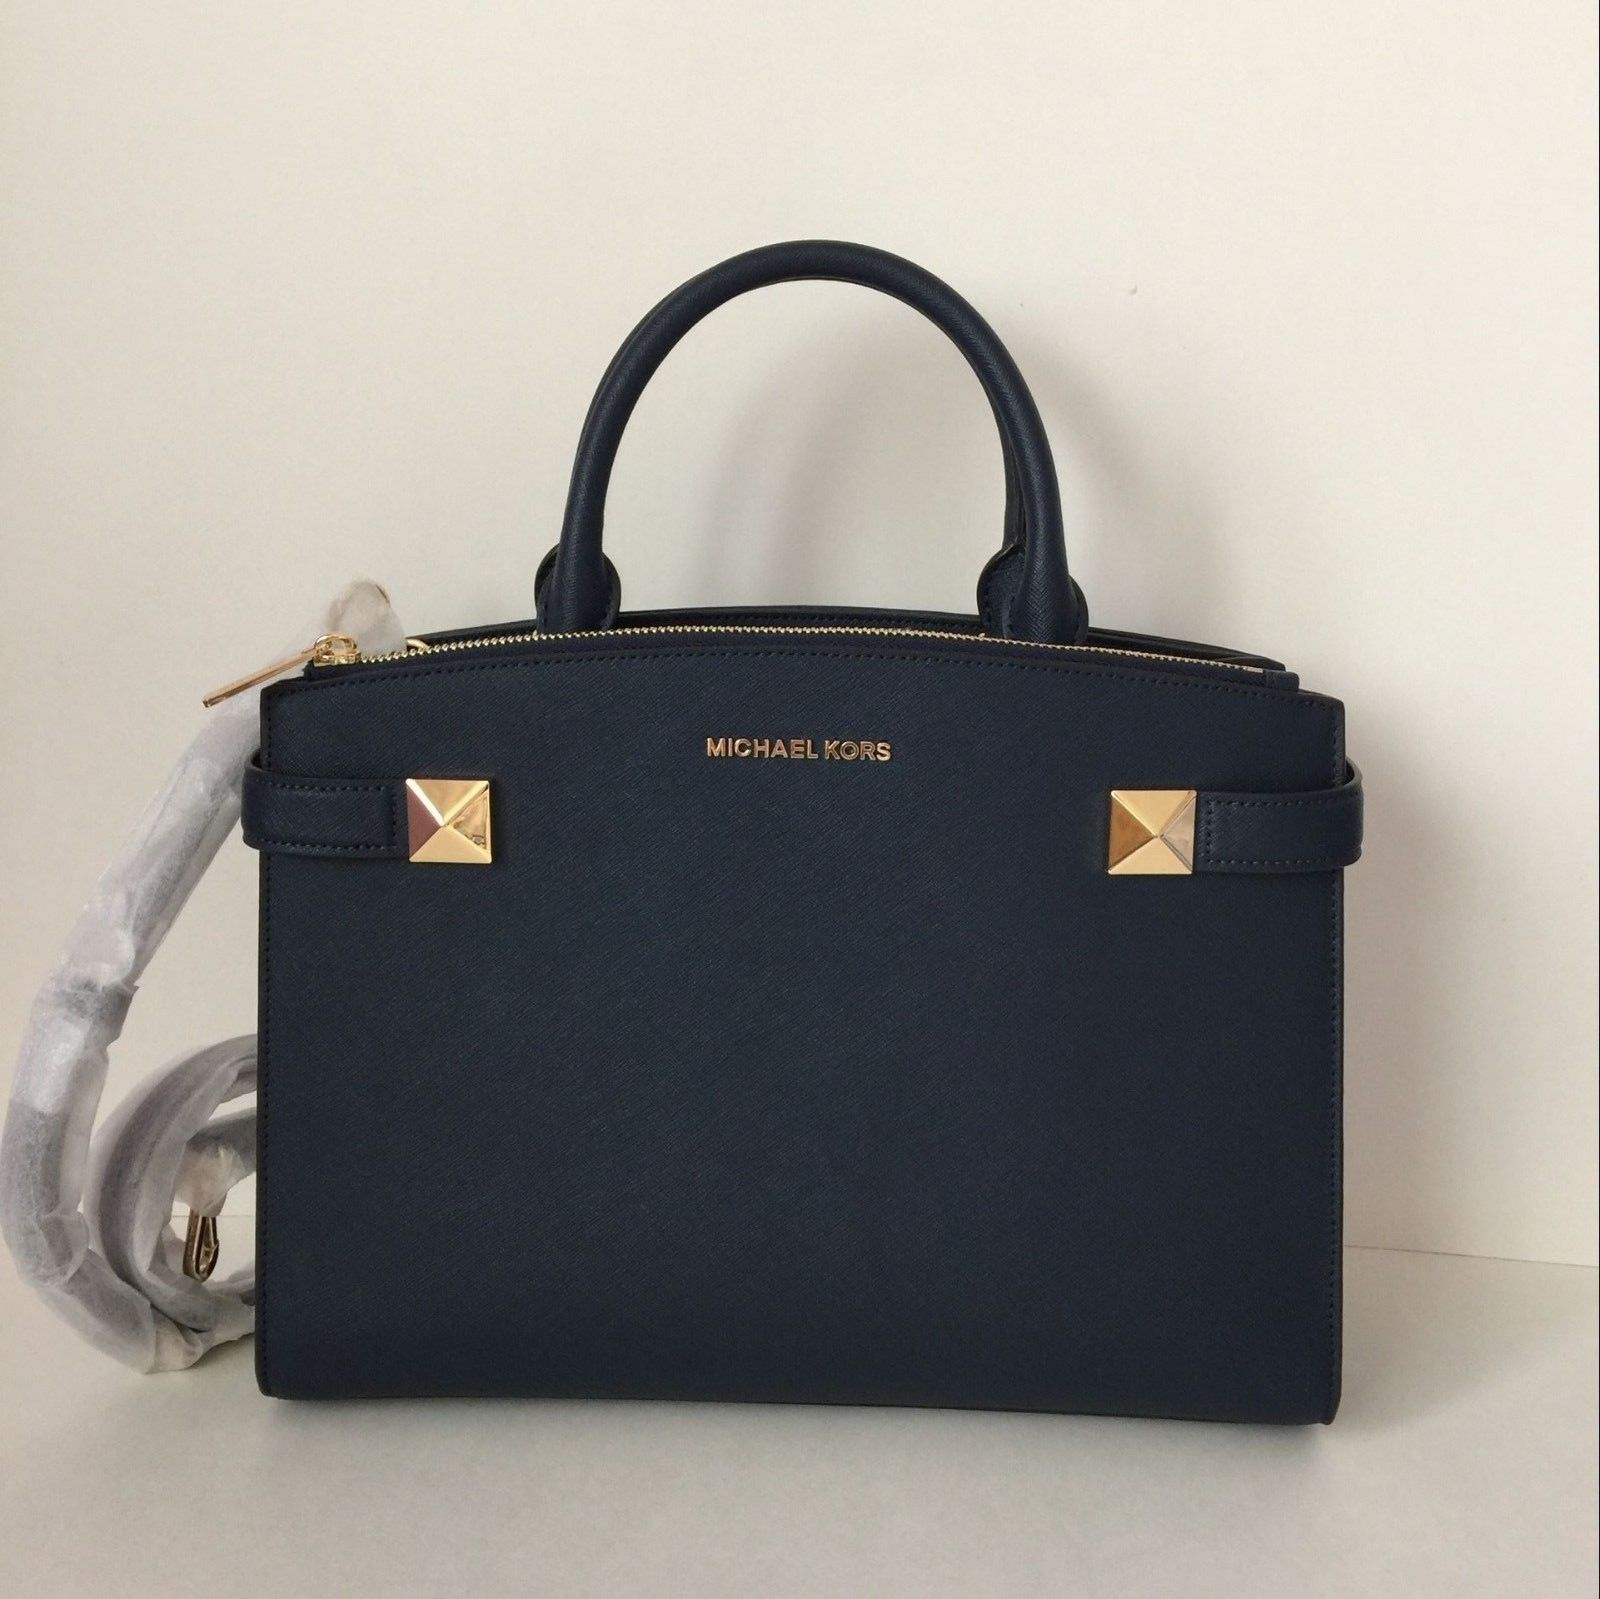 e5968dbe57f9 S l1600. S l1600. Previous. NWT Michael Kors Karla Medium Satchel Handbag  Navy Saffiano Leather $378